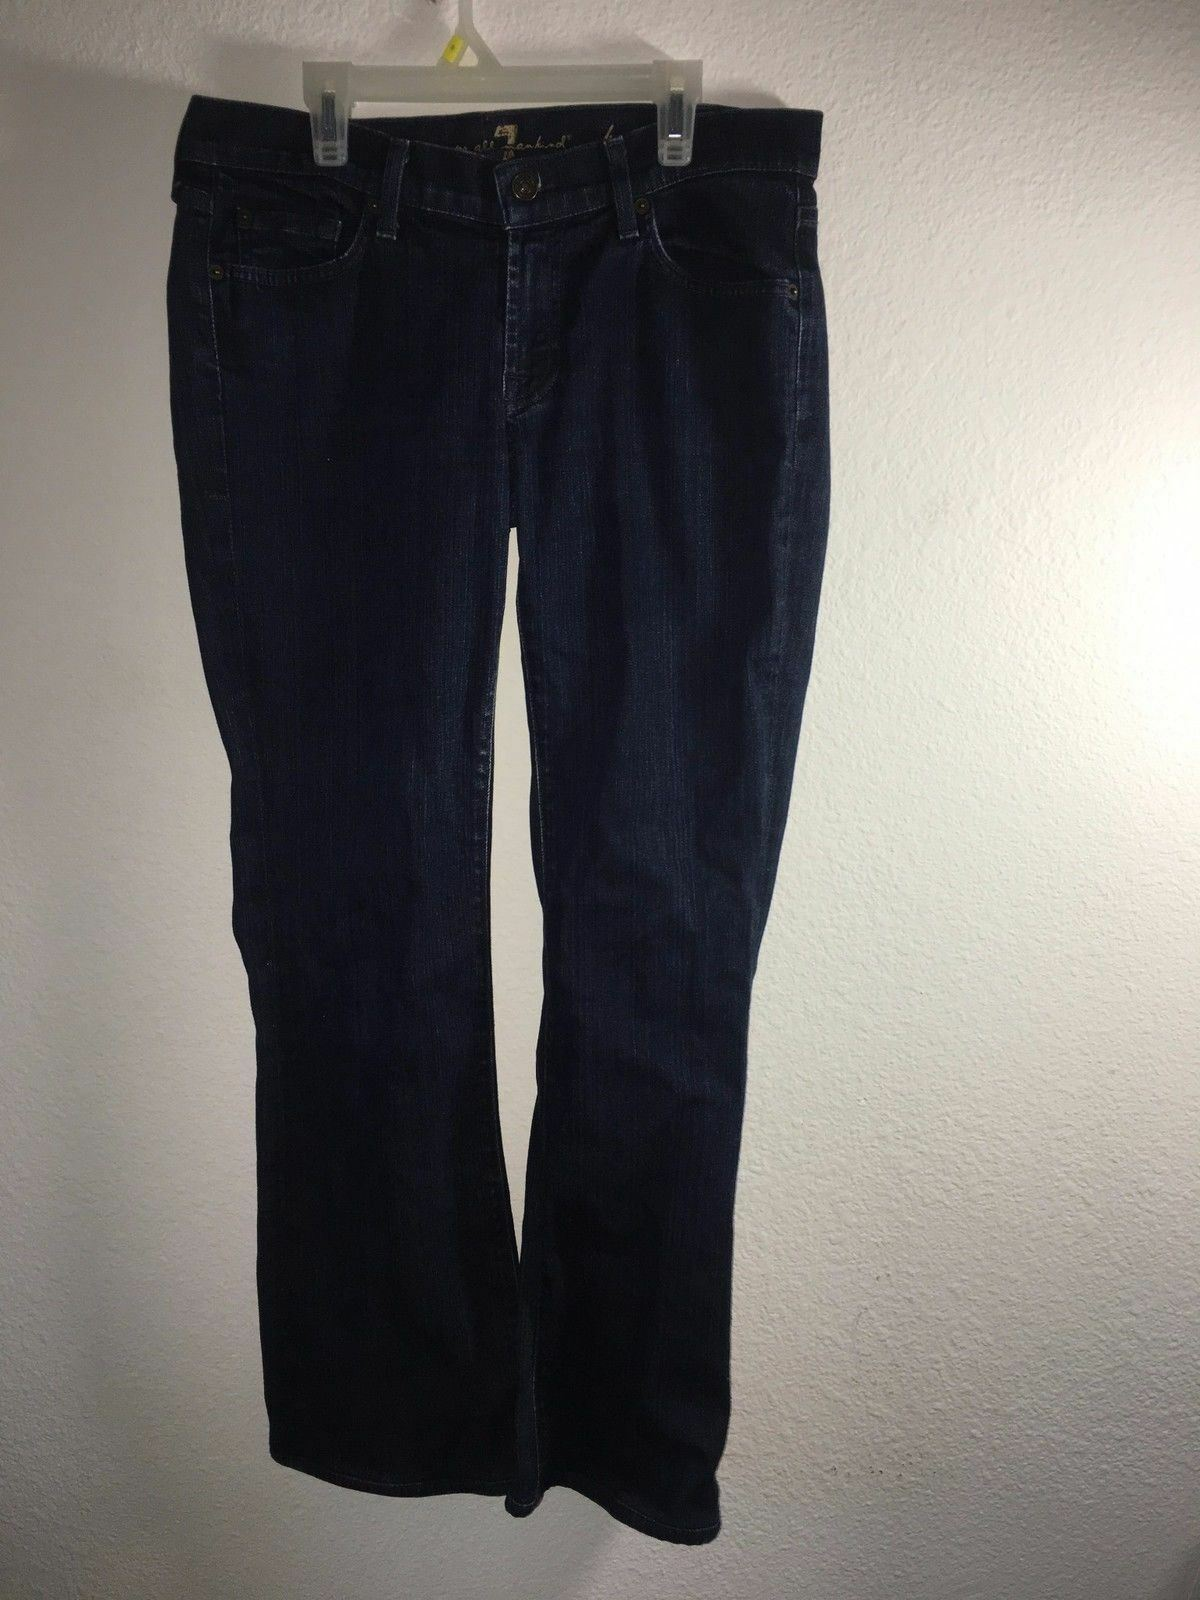 Woman 7 For All Mankind jeans size 29 (L18)